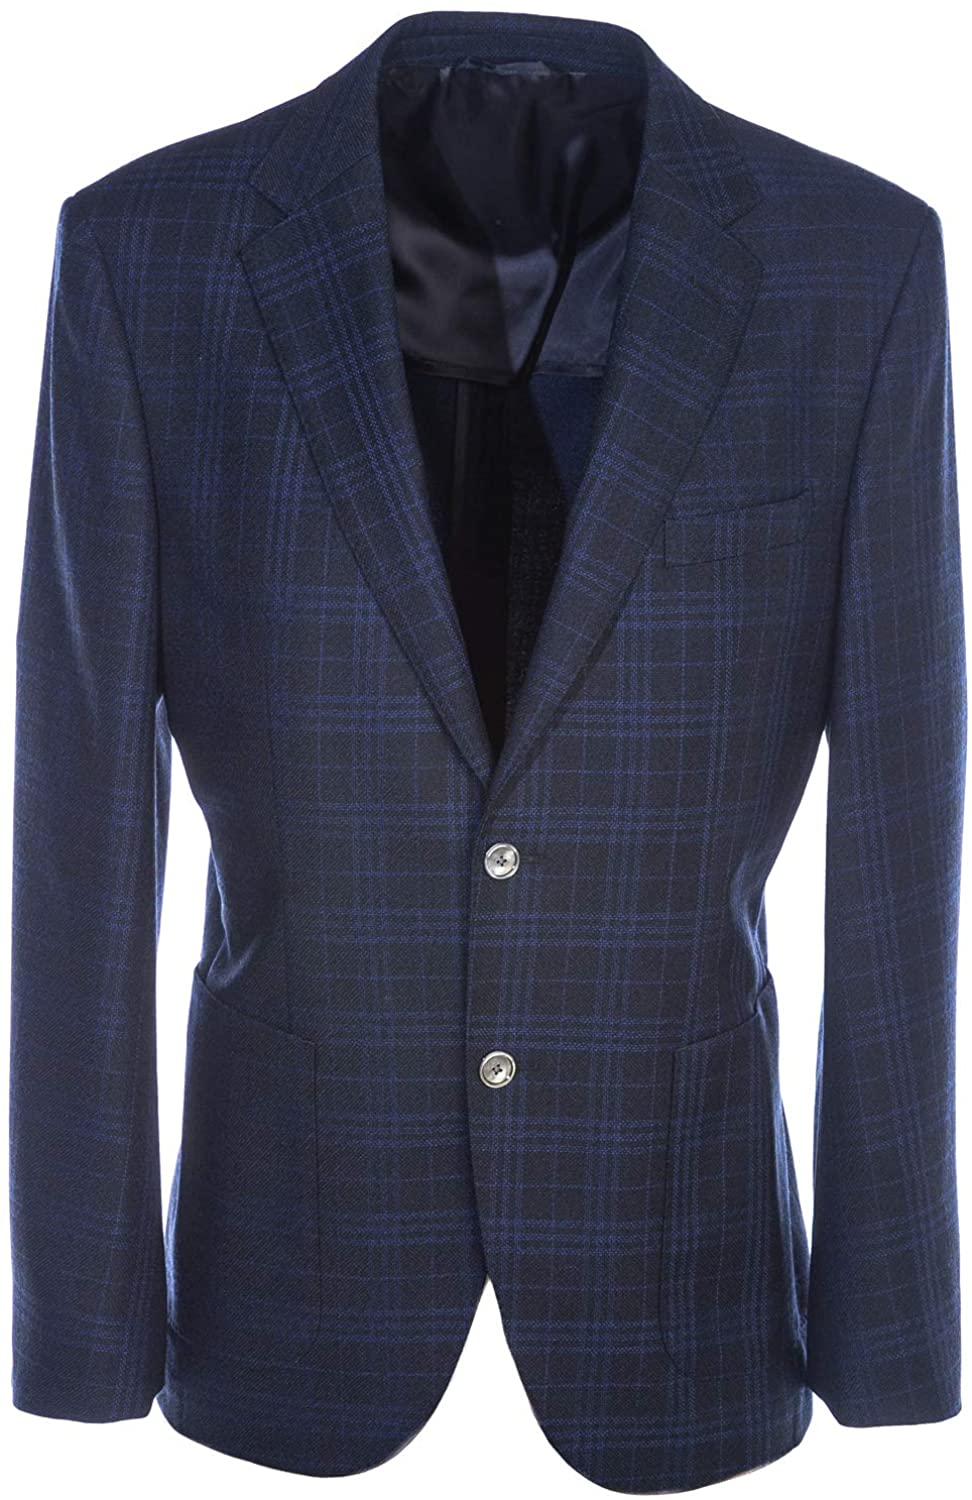 BOSS Janson Jacket in Navy Check